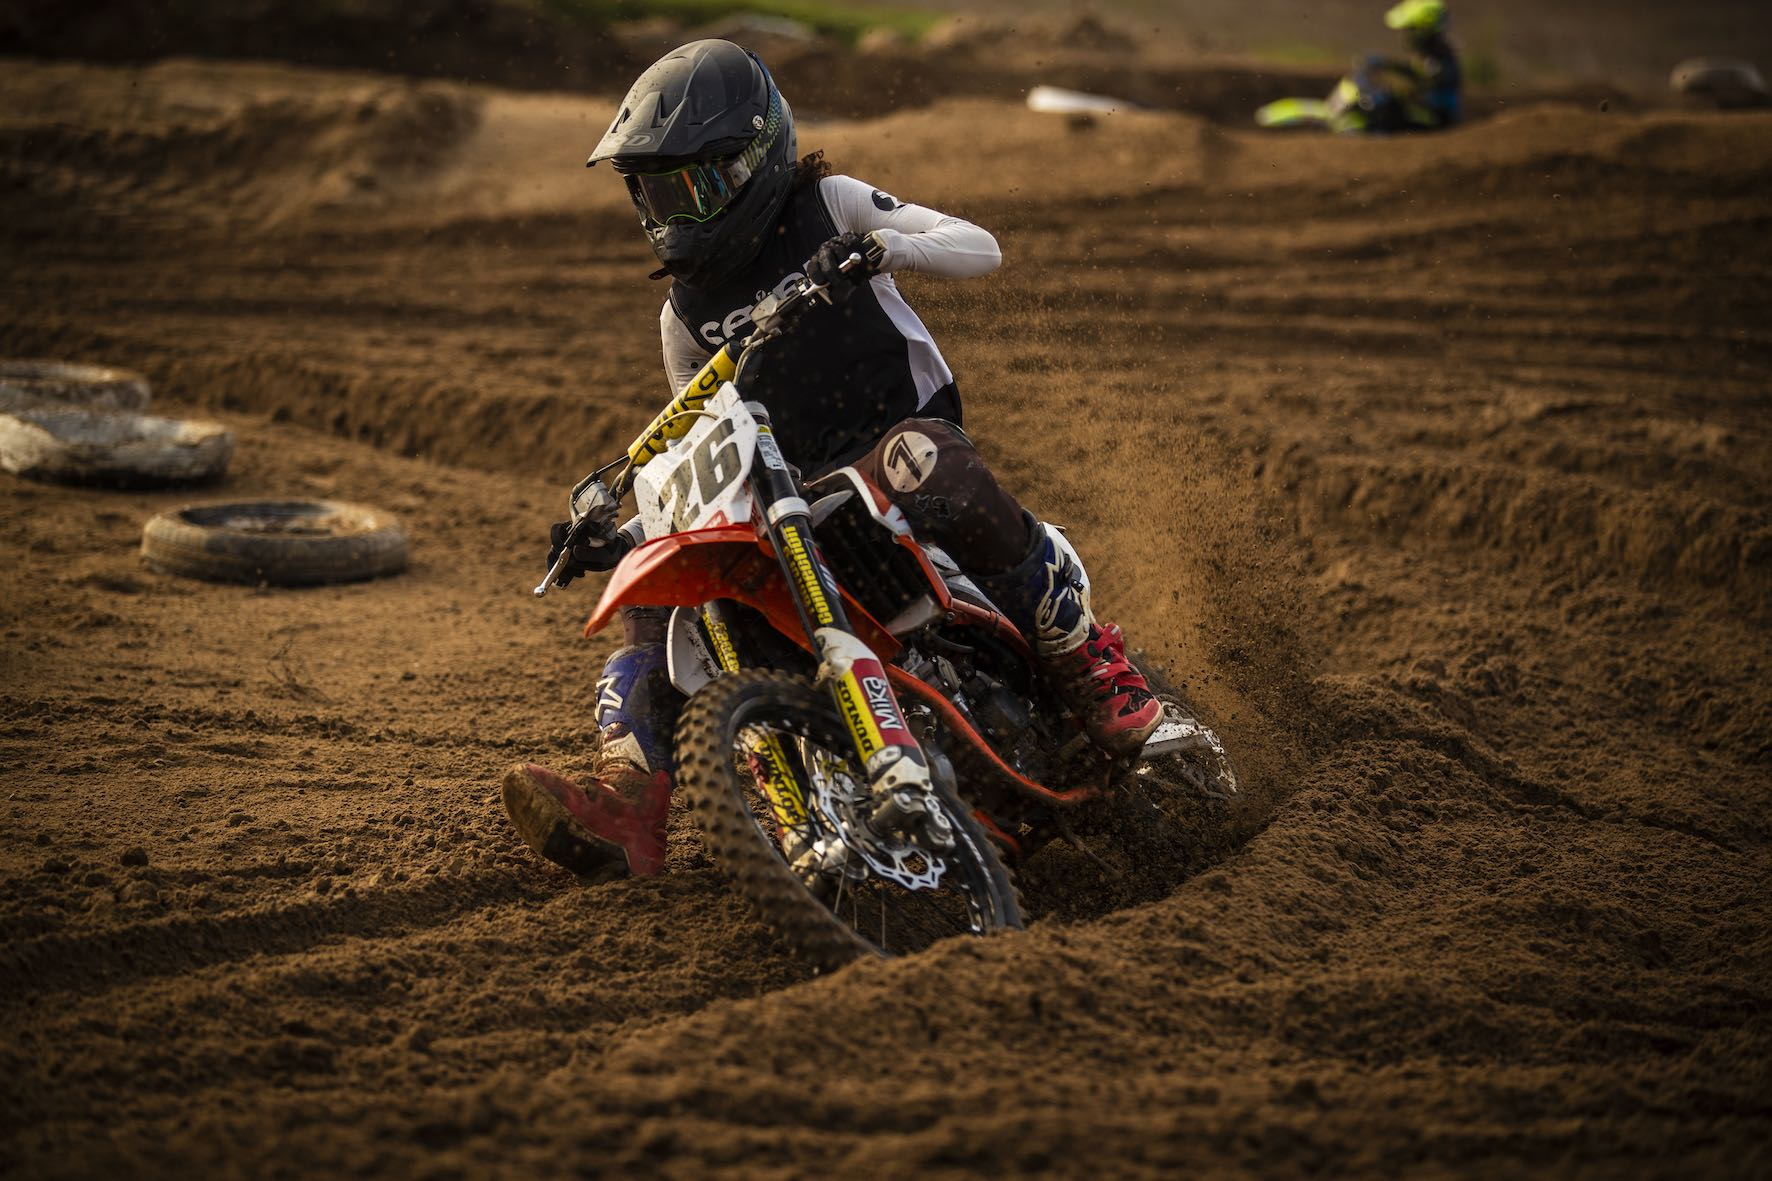 Stav Orland racing in the MX Nationals on Cape Town